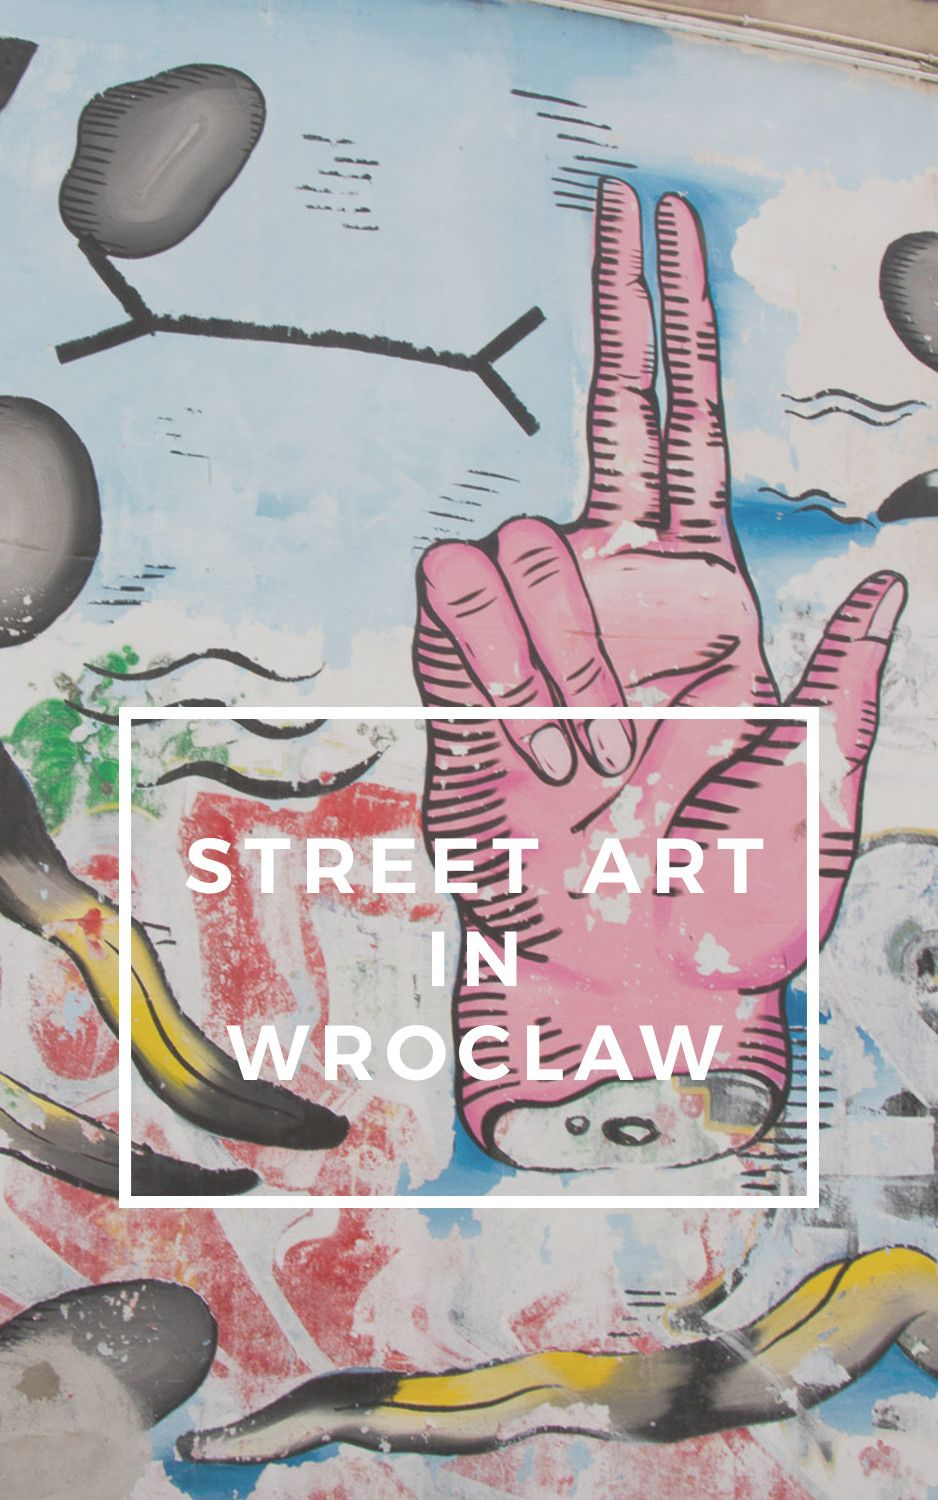 Are you a street art lover? Poland can be so colourful! Check out the most amazing works I discovered in Wroclaw! See for yourself!